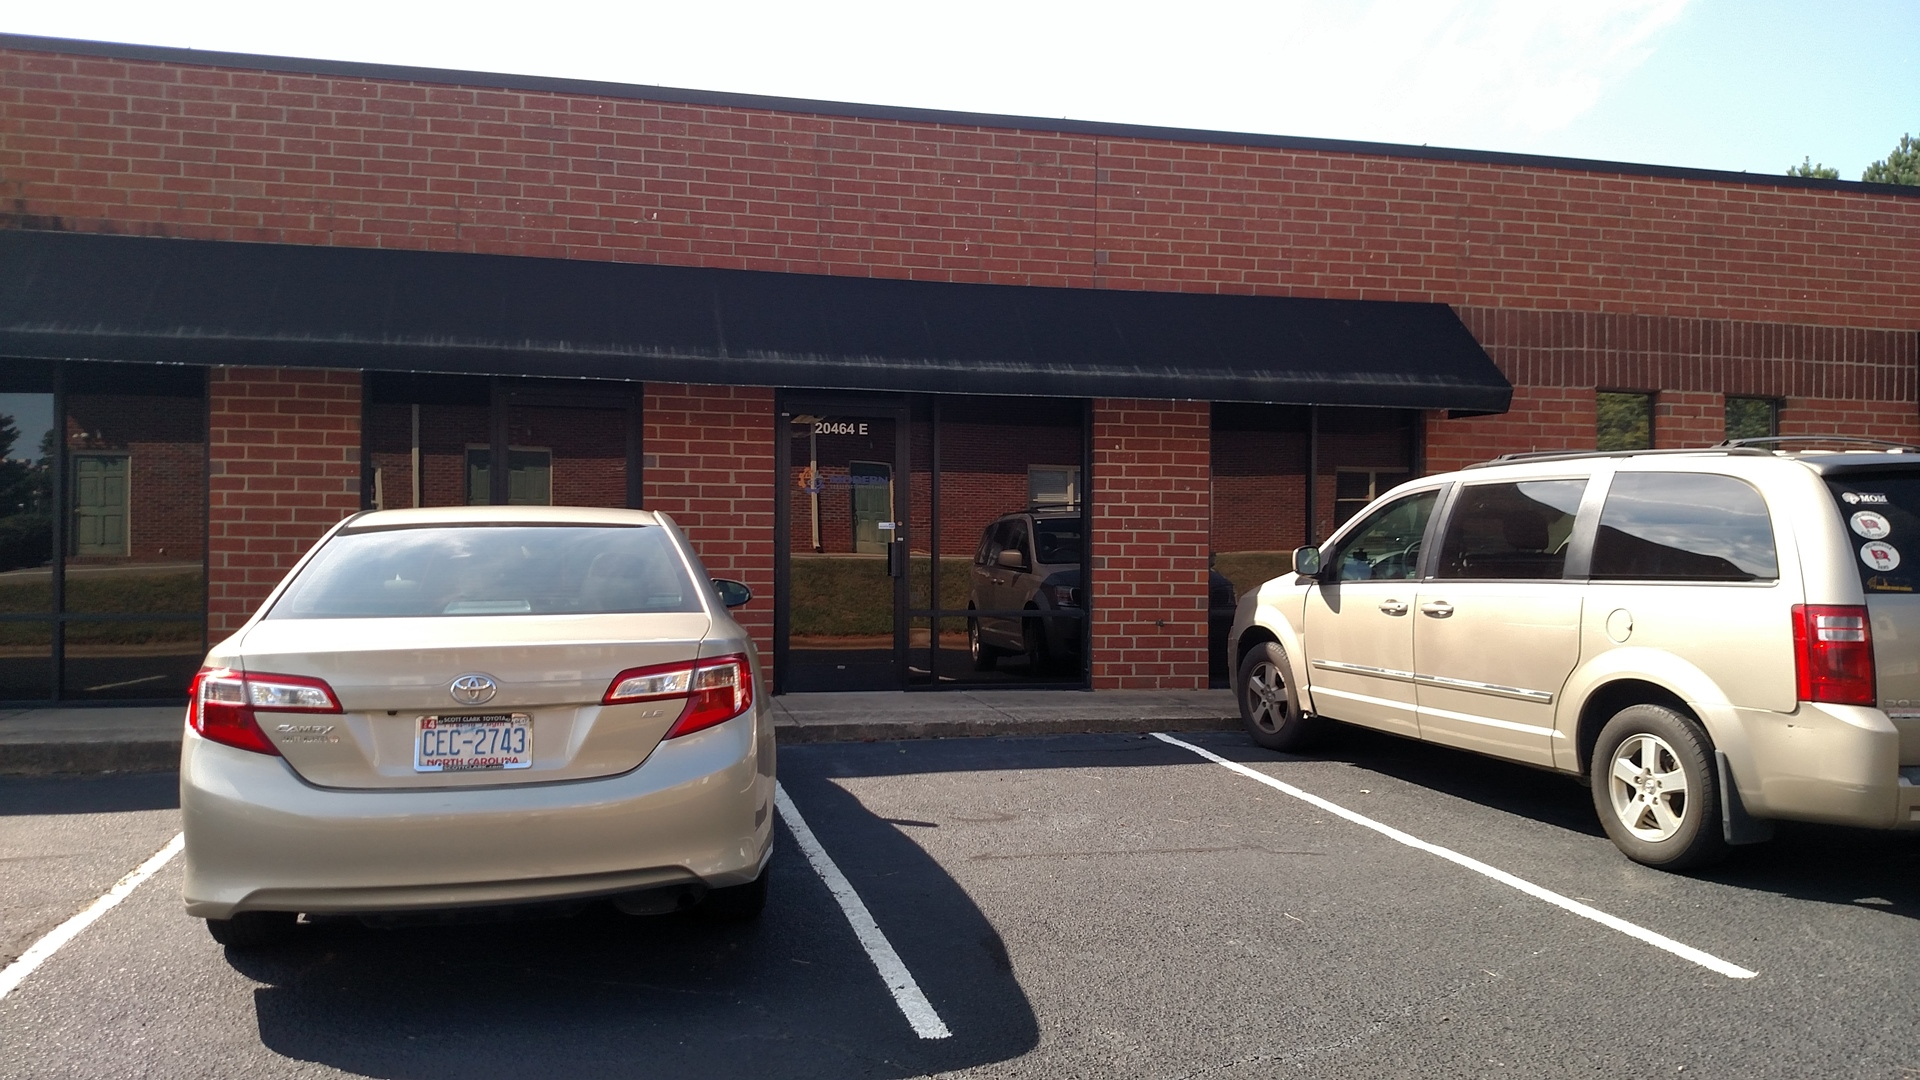 Industrial Property for Lease Cornelius, NC